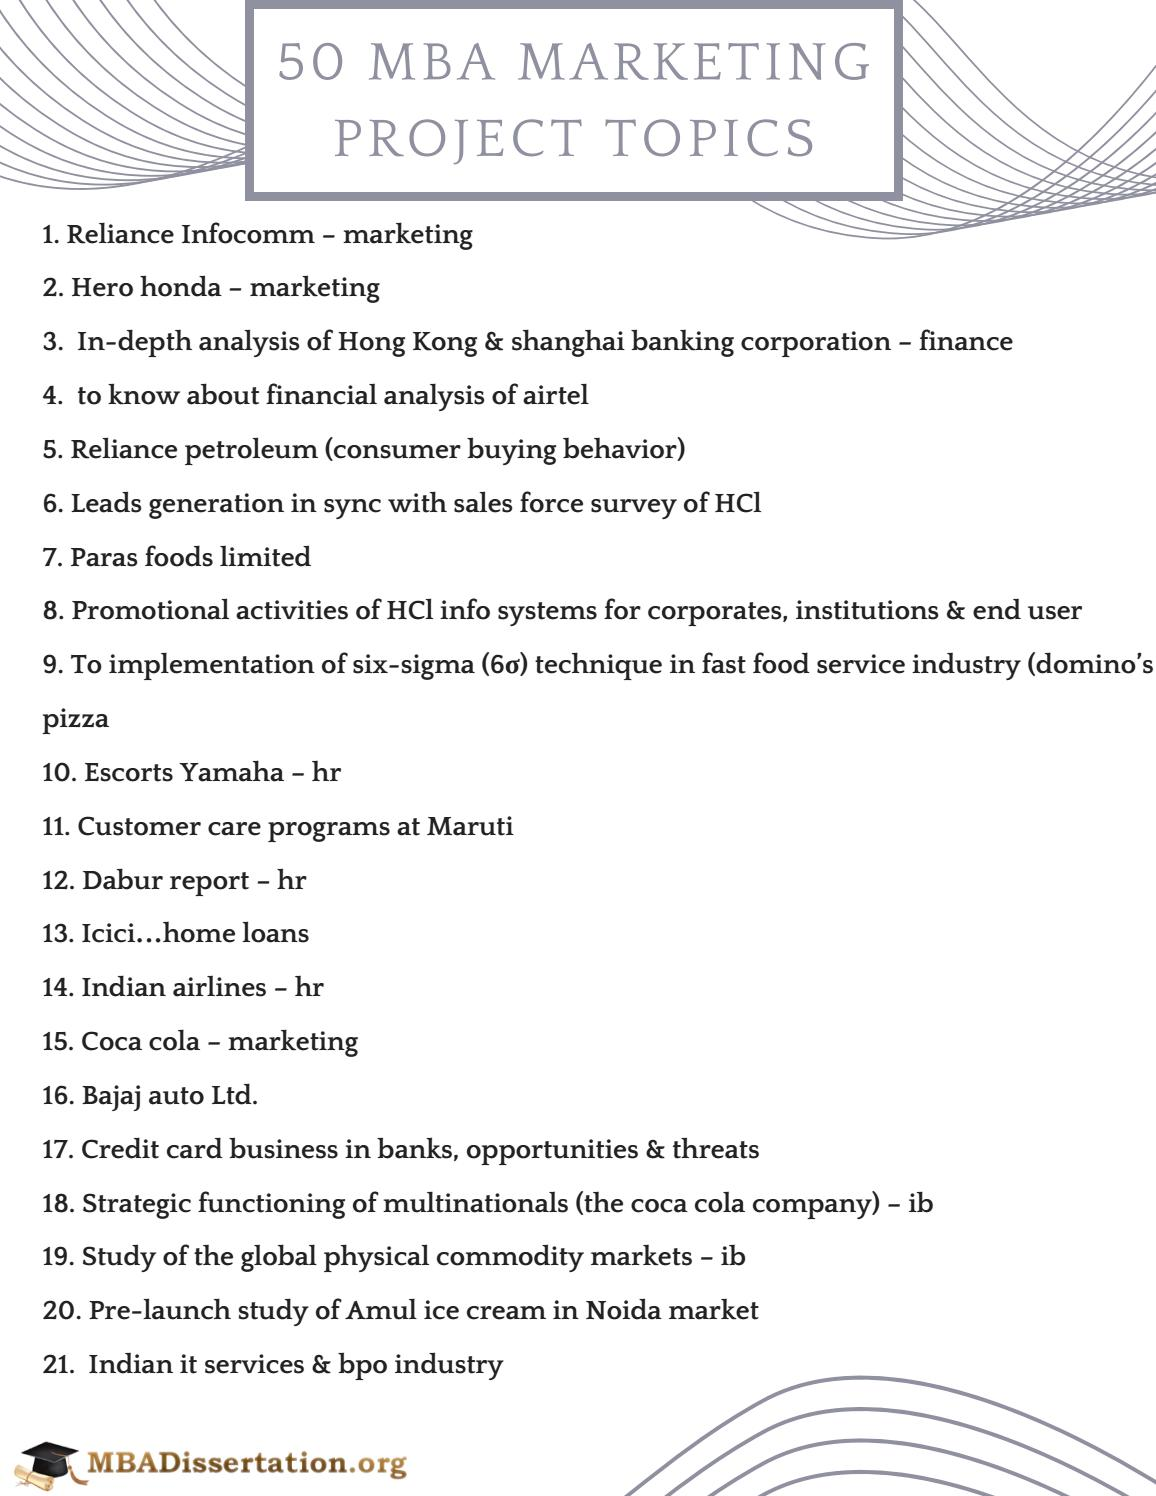 service marketing project topics